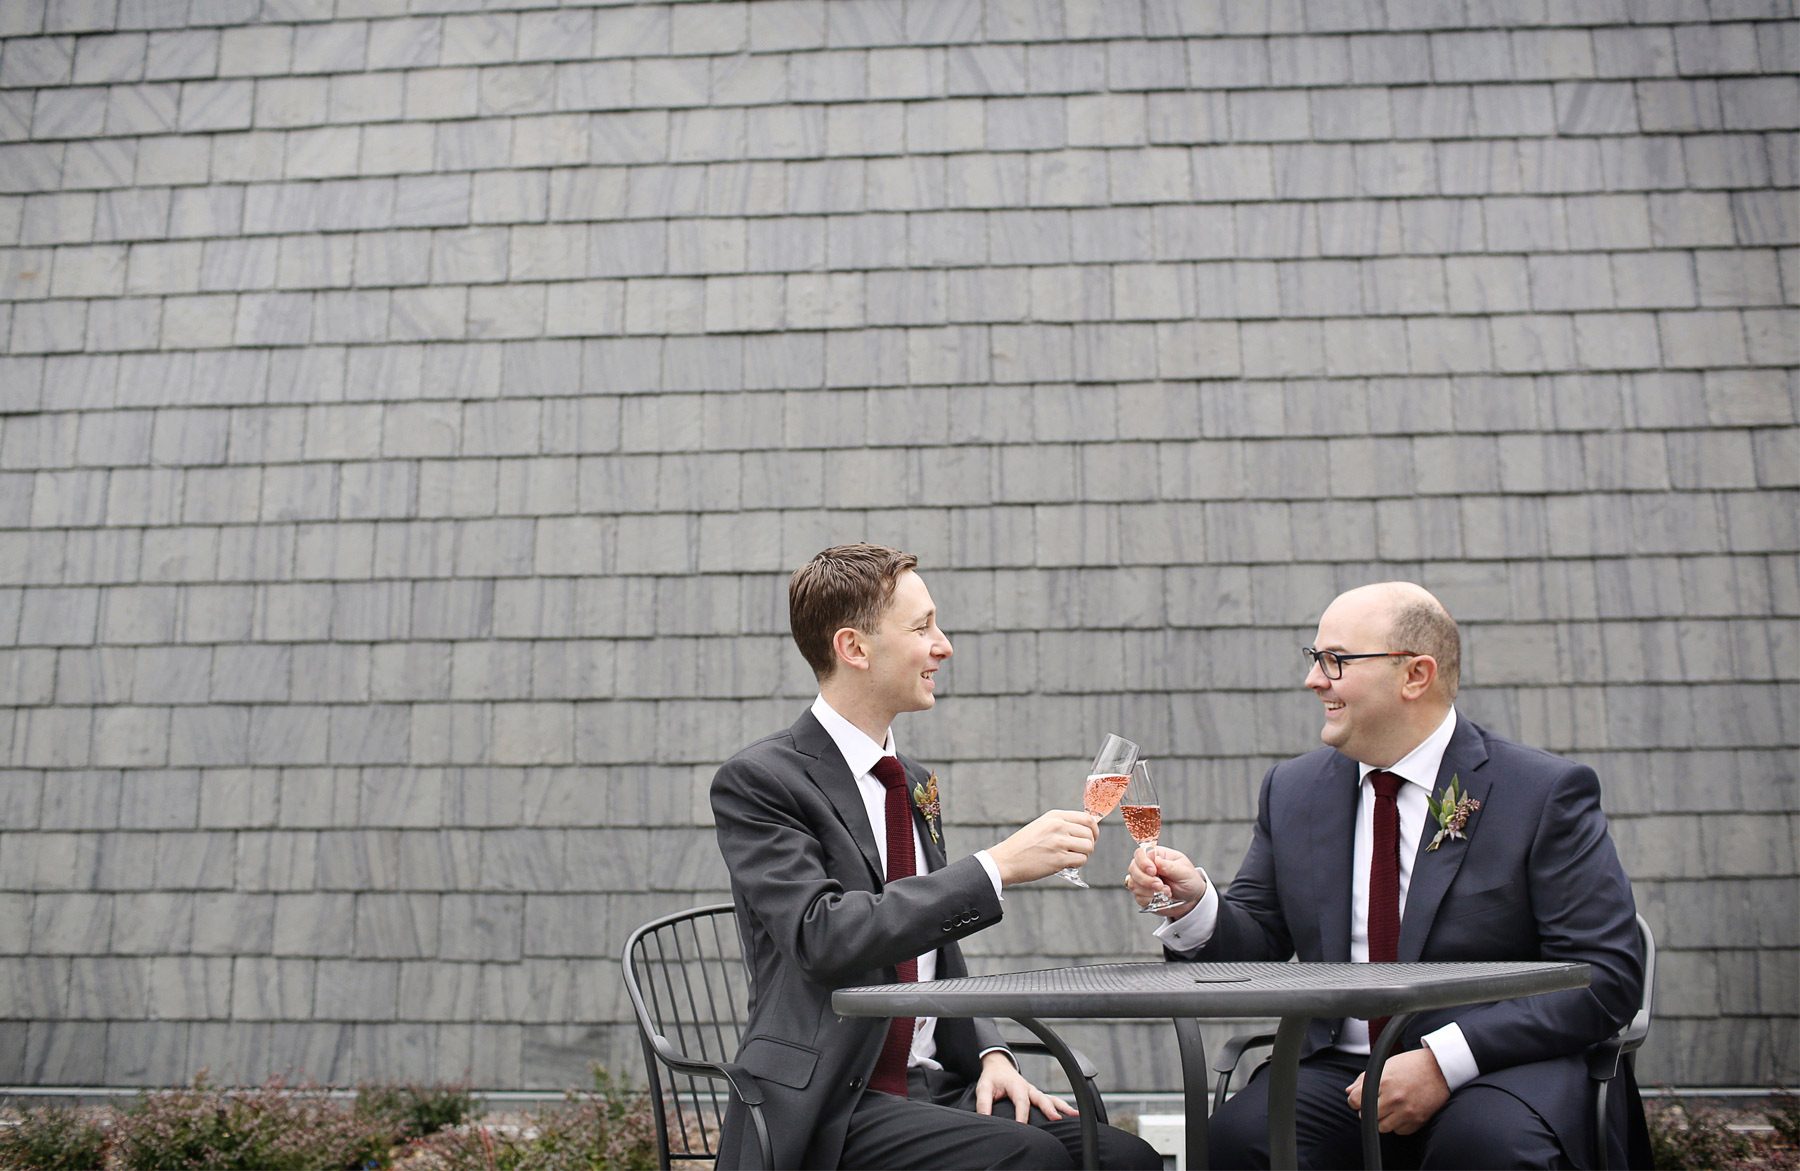 05-Minneapolis-Minnesota-Wedding-Photographer-by-Andrew-Vick-Photography-Fall-Autumn-American-Swedish-Institute-First-Meeting-Look-Groom-Pink-Champagne-Ben-and-Adam.jpg